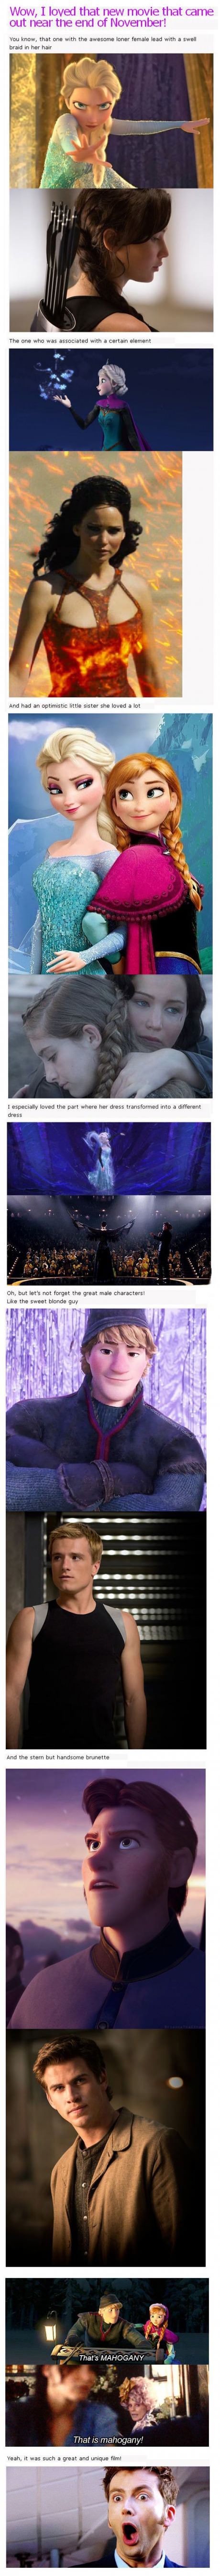 Resemblances between Frozen and Catching Fire....who would've thought?